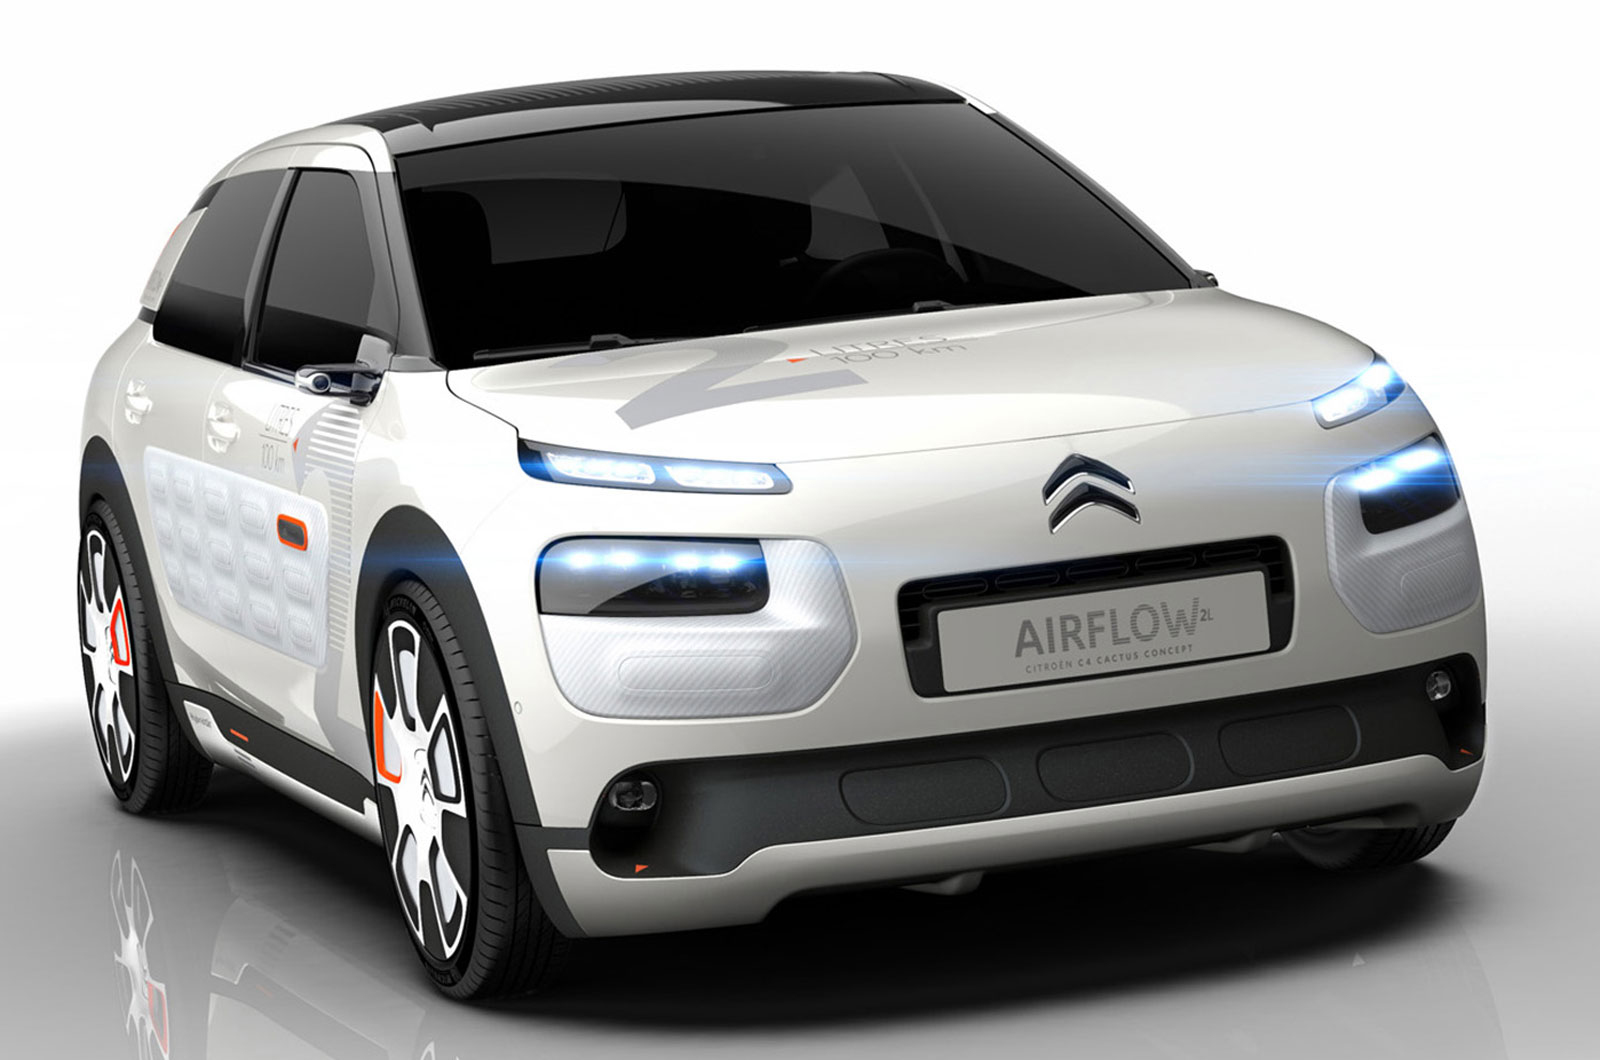 citro n 39 s c4 cactus airflow 2l concept uses aerodynamics weight reduction and a. Black Bedroom Furniture Sets. Home Design Ideas